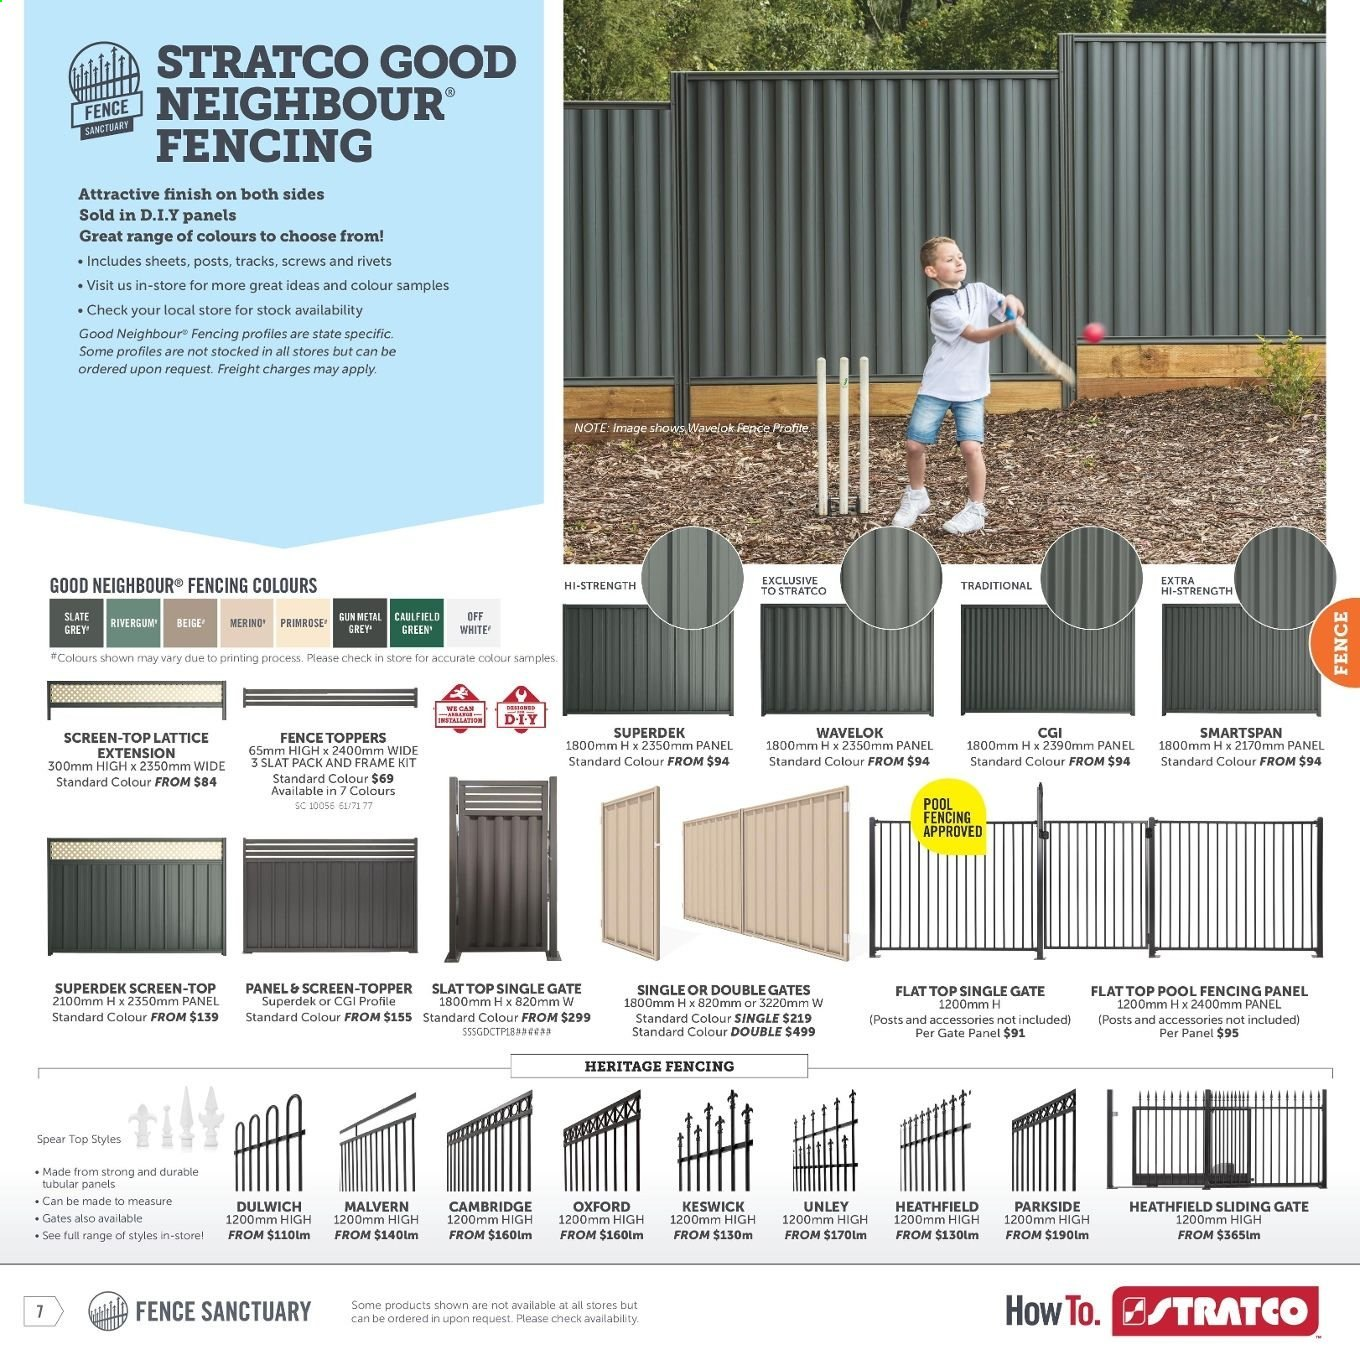 Stratco catalogue and weekly specials 28 6 2019 - 14 7 2019 | Au